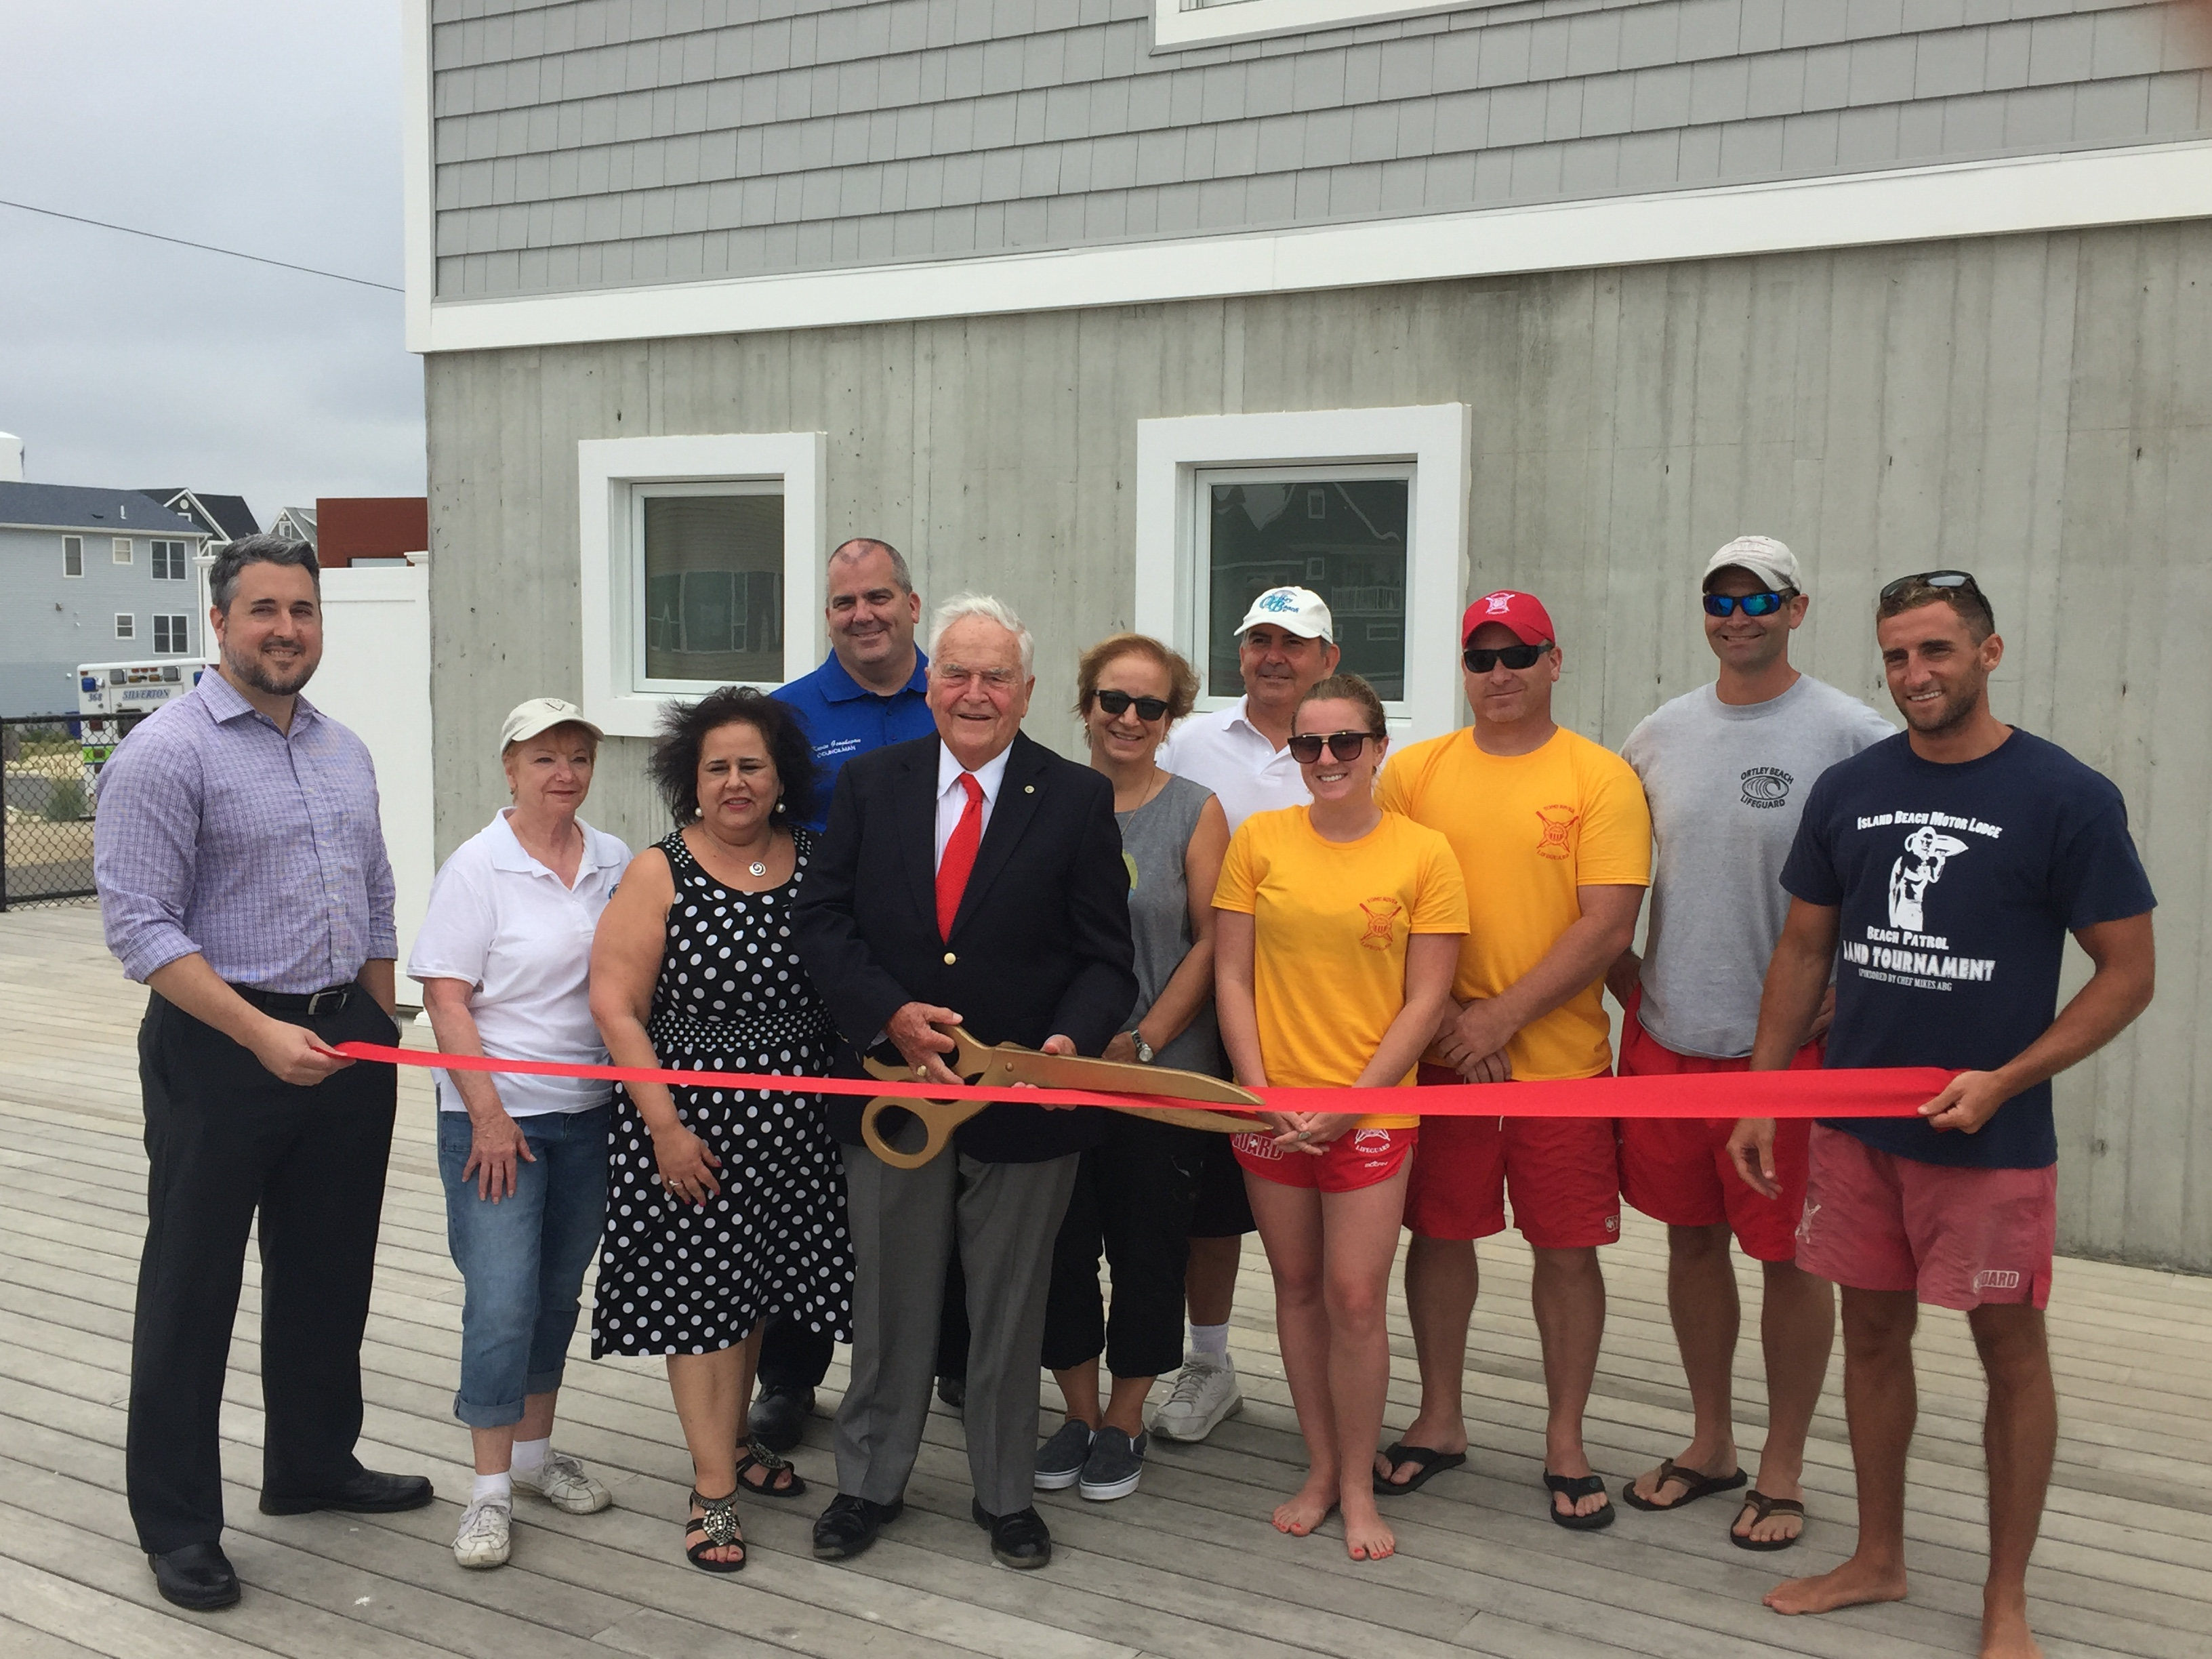 Toms River officials on hand for reopening of the newly-built Block House lifeguard station. (Photo: Daniel Nee)